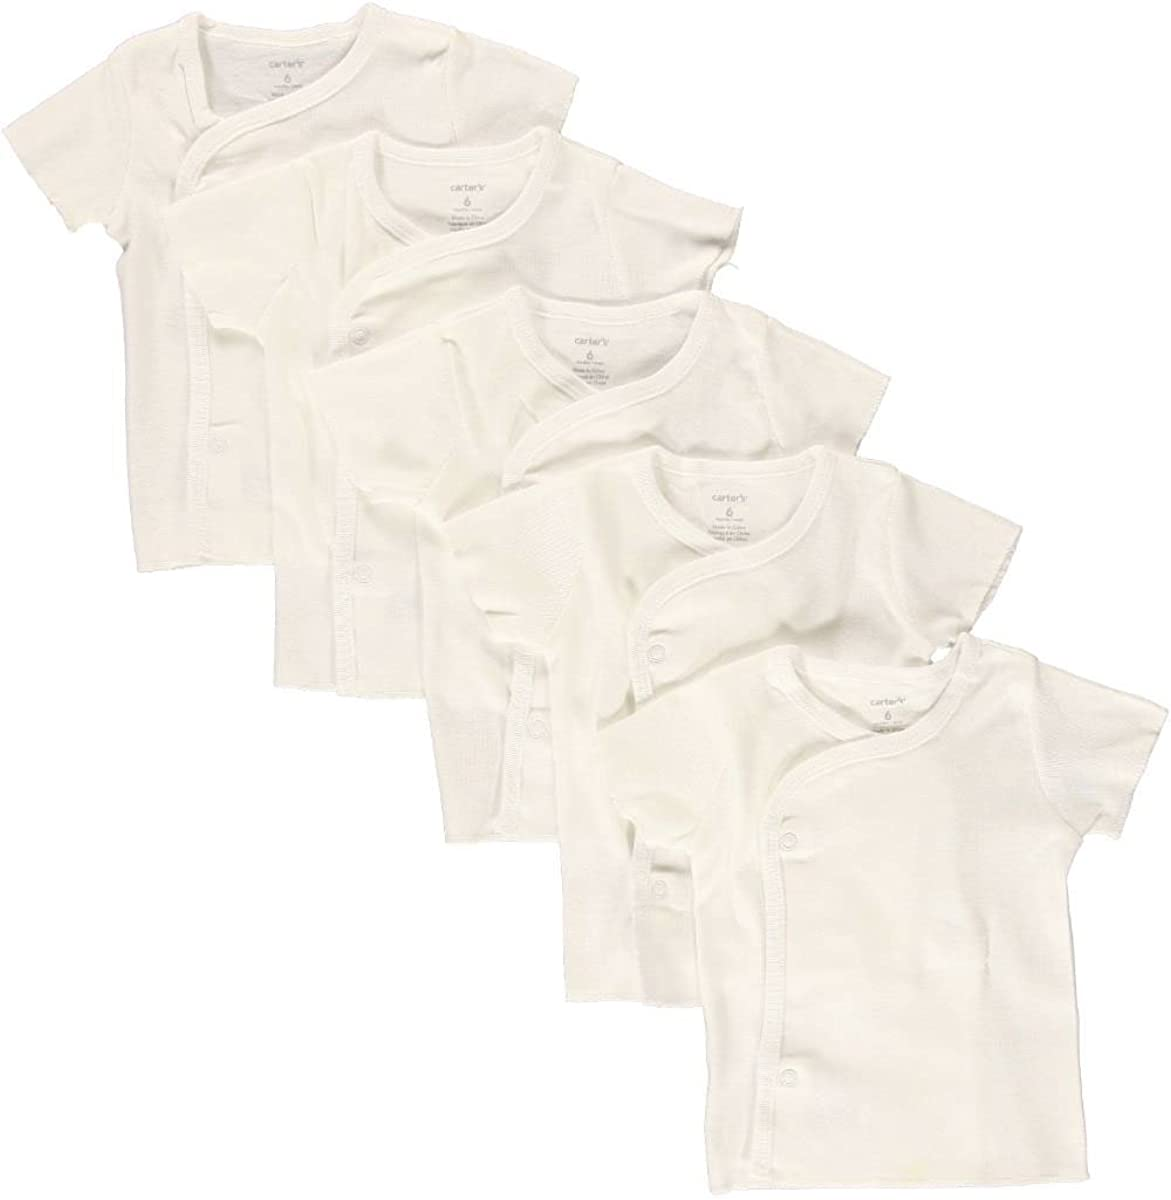 Carter's Unisex Baby 5-Pack Shirts